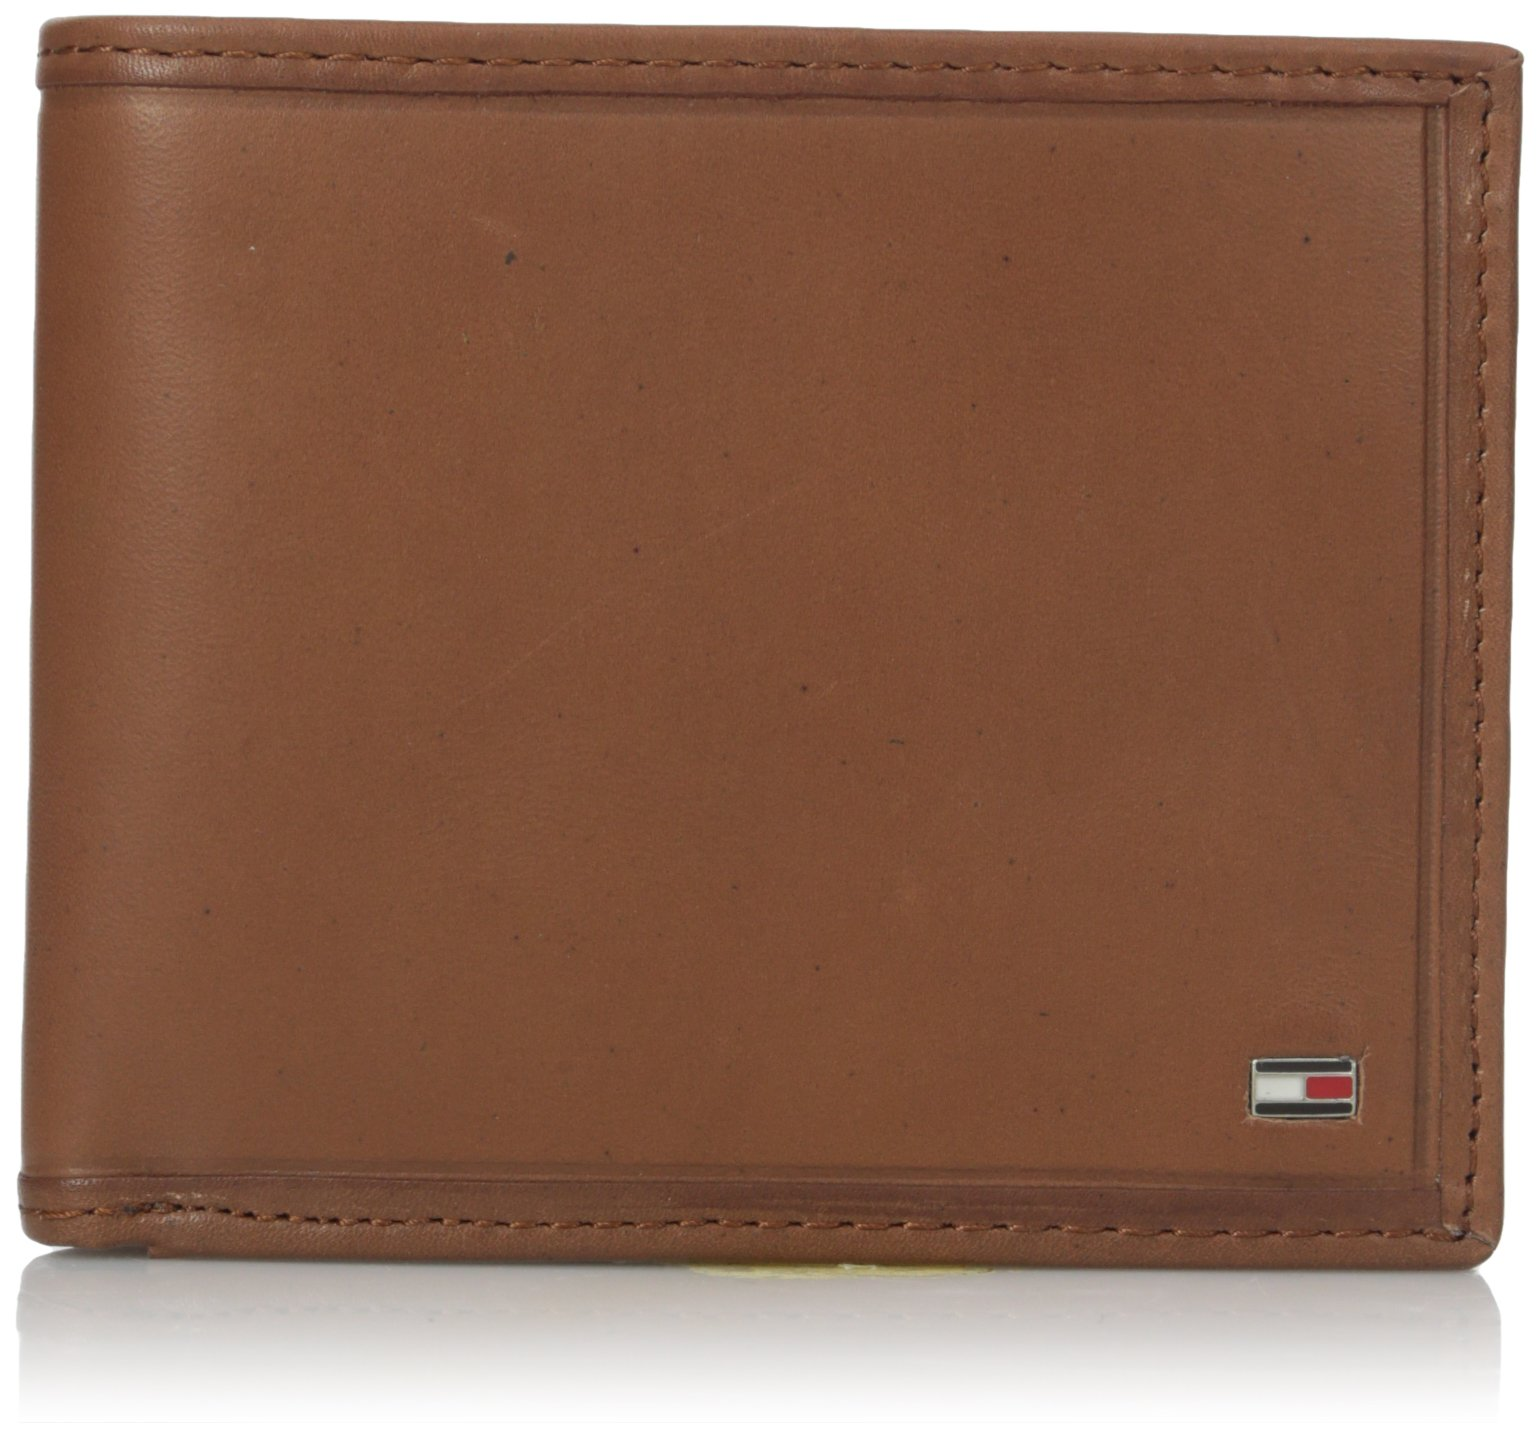 Tommy Hilfiger Men's Leather Wallet - Bifold Trifold Hybrid Flip Pocket Extra Capacity Casual Slim Thin for Travel,Sand by Tommy Hilfiger